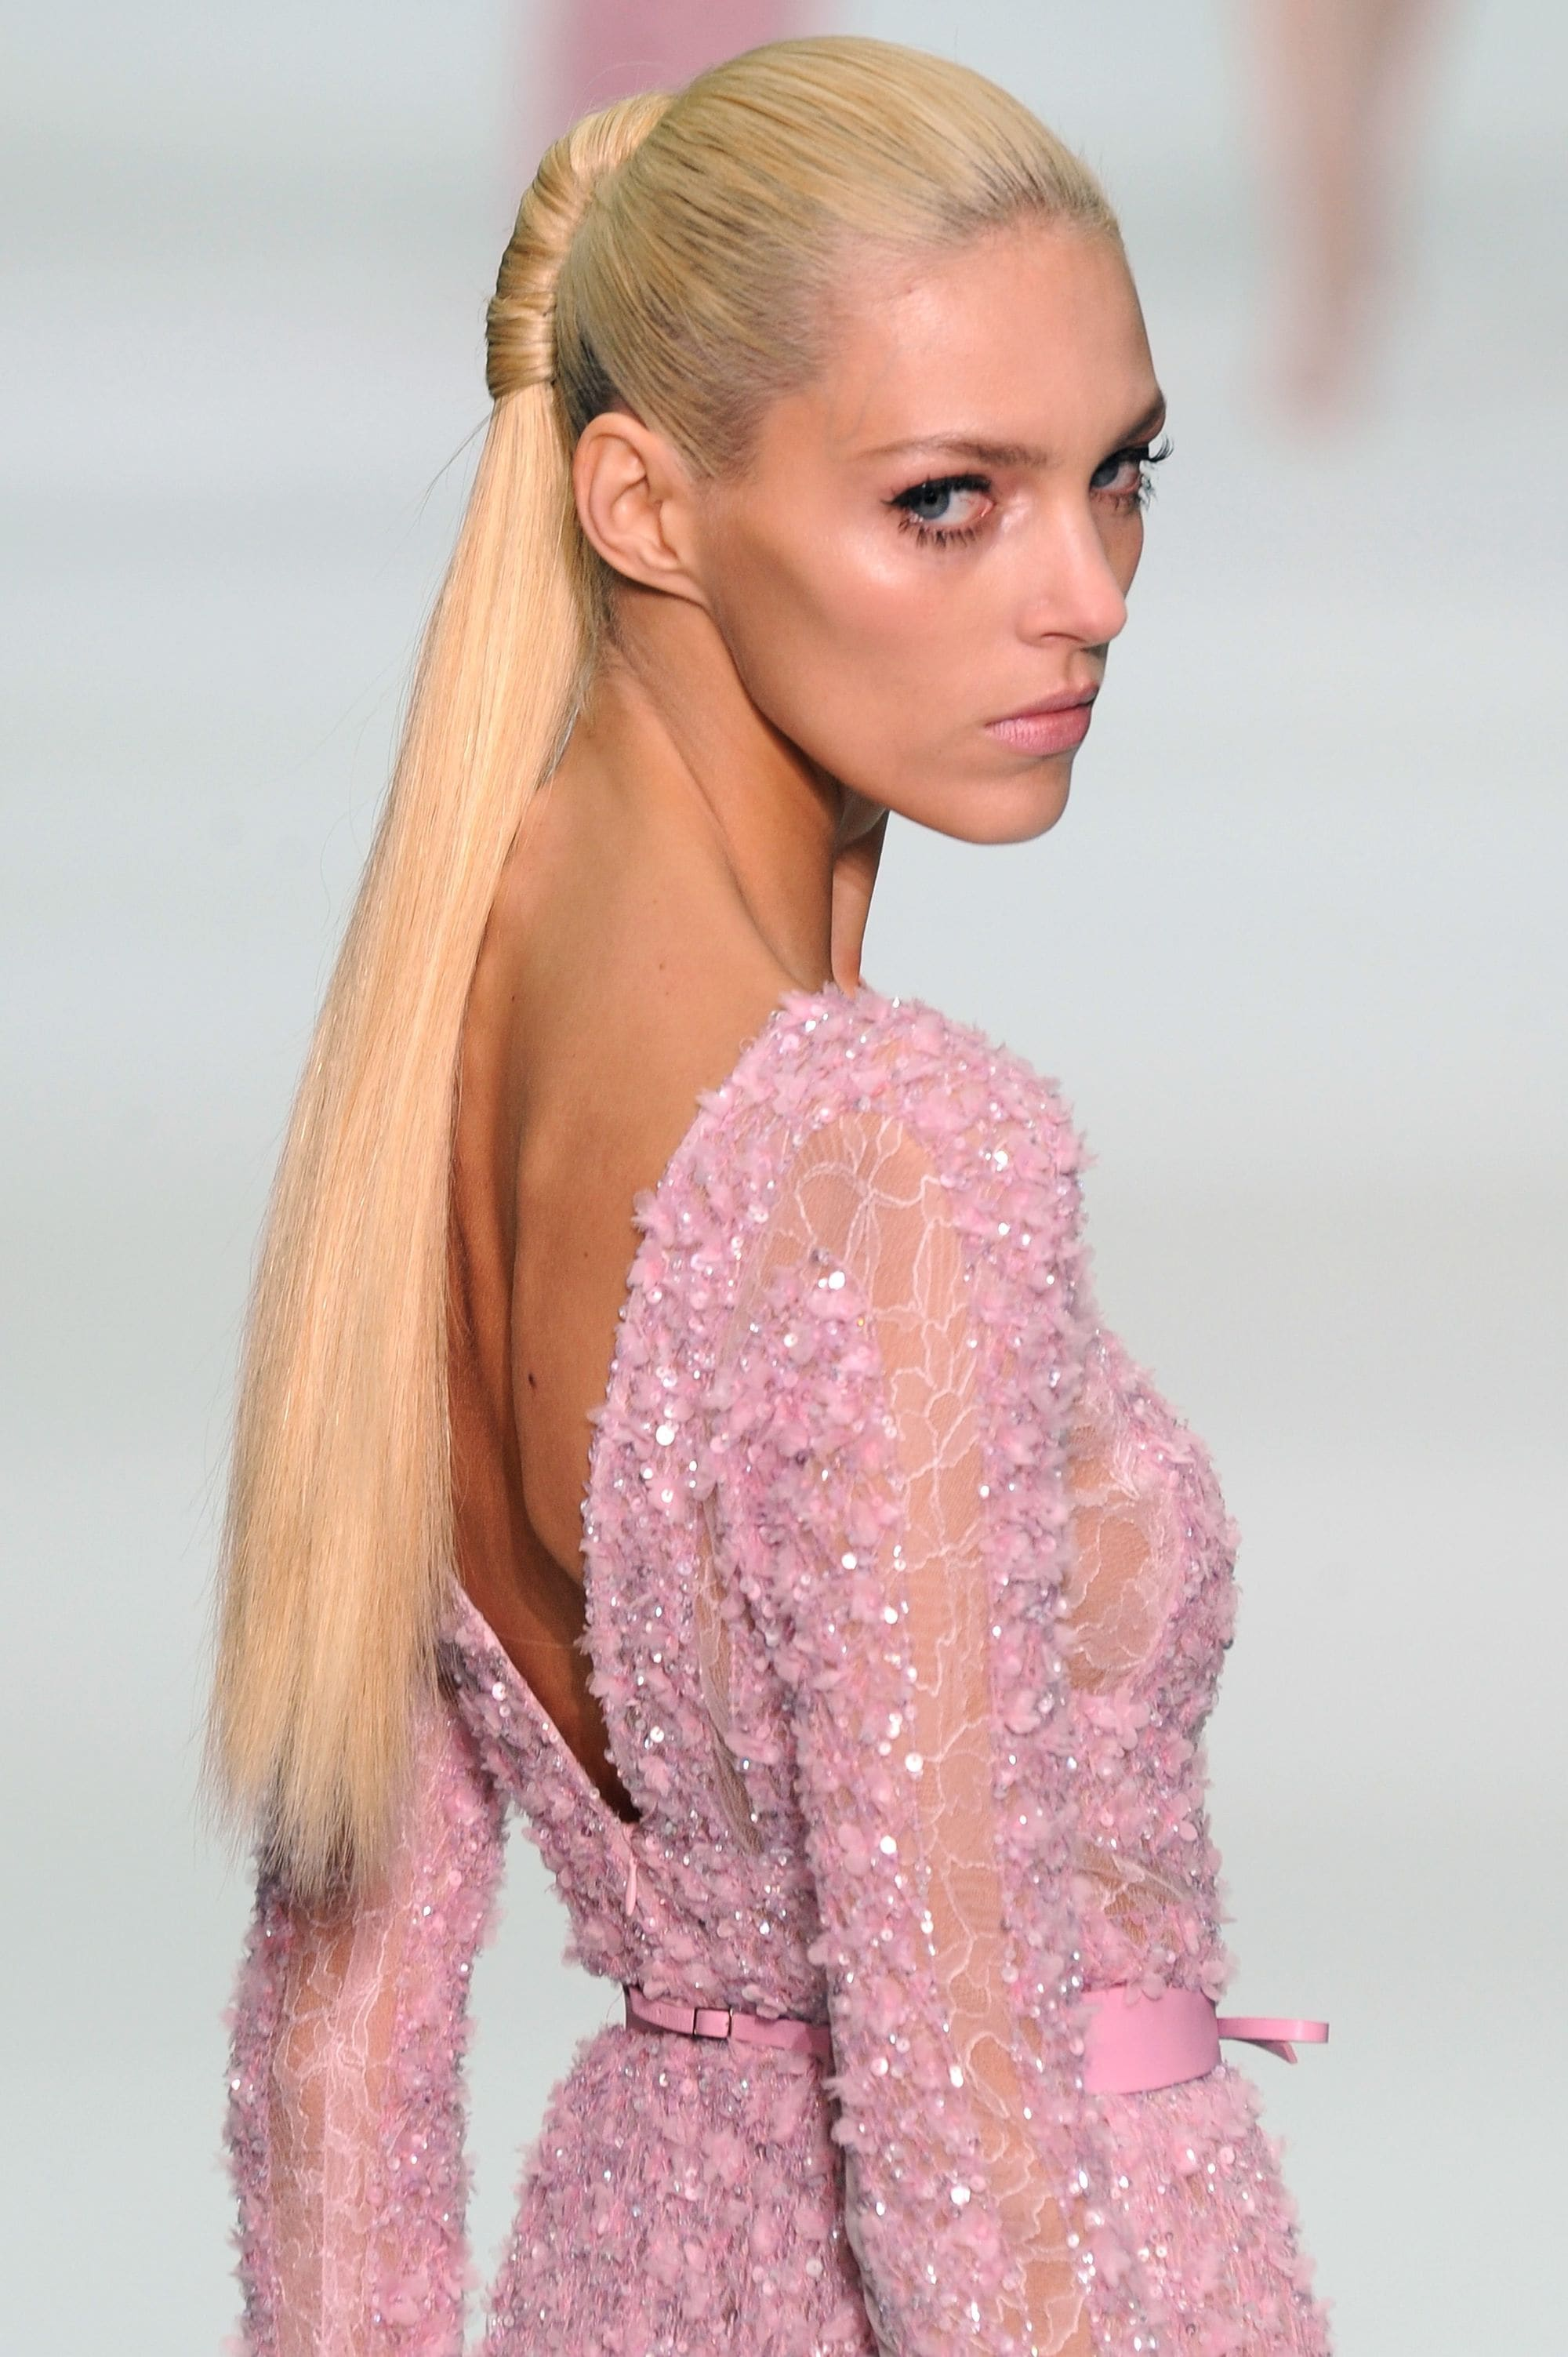 blonde elie saab model on the runway in a pink dress with a structured ponytail